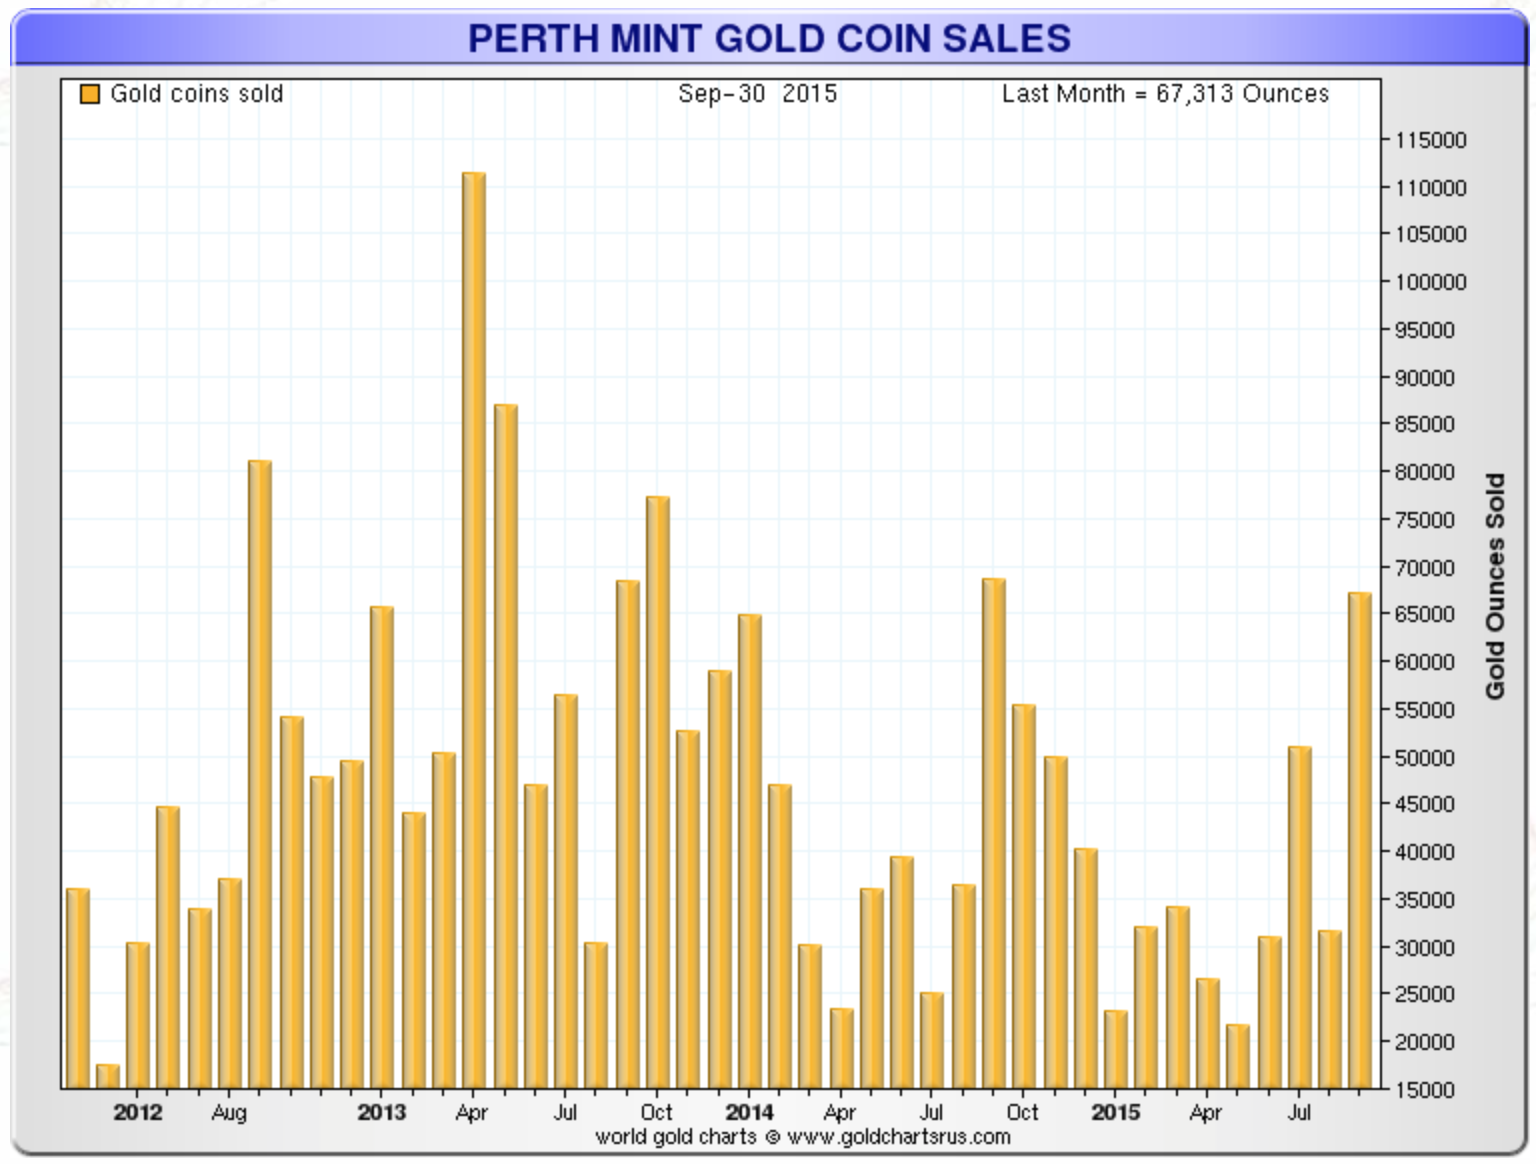 Perth Mint gold coin sales